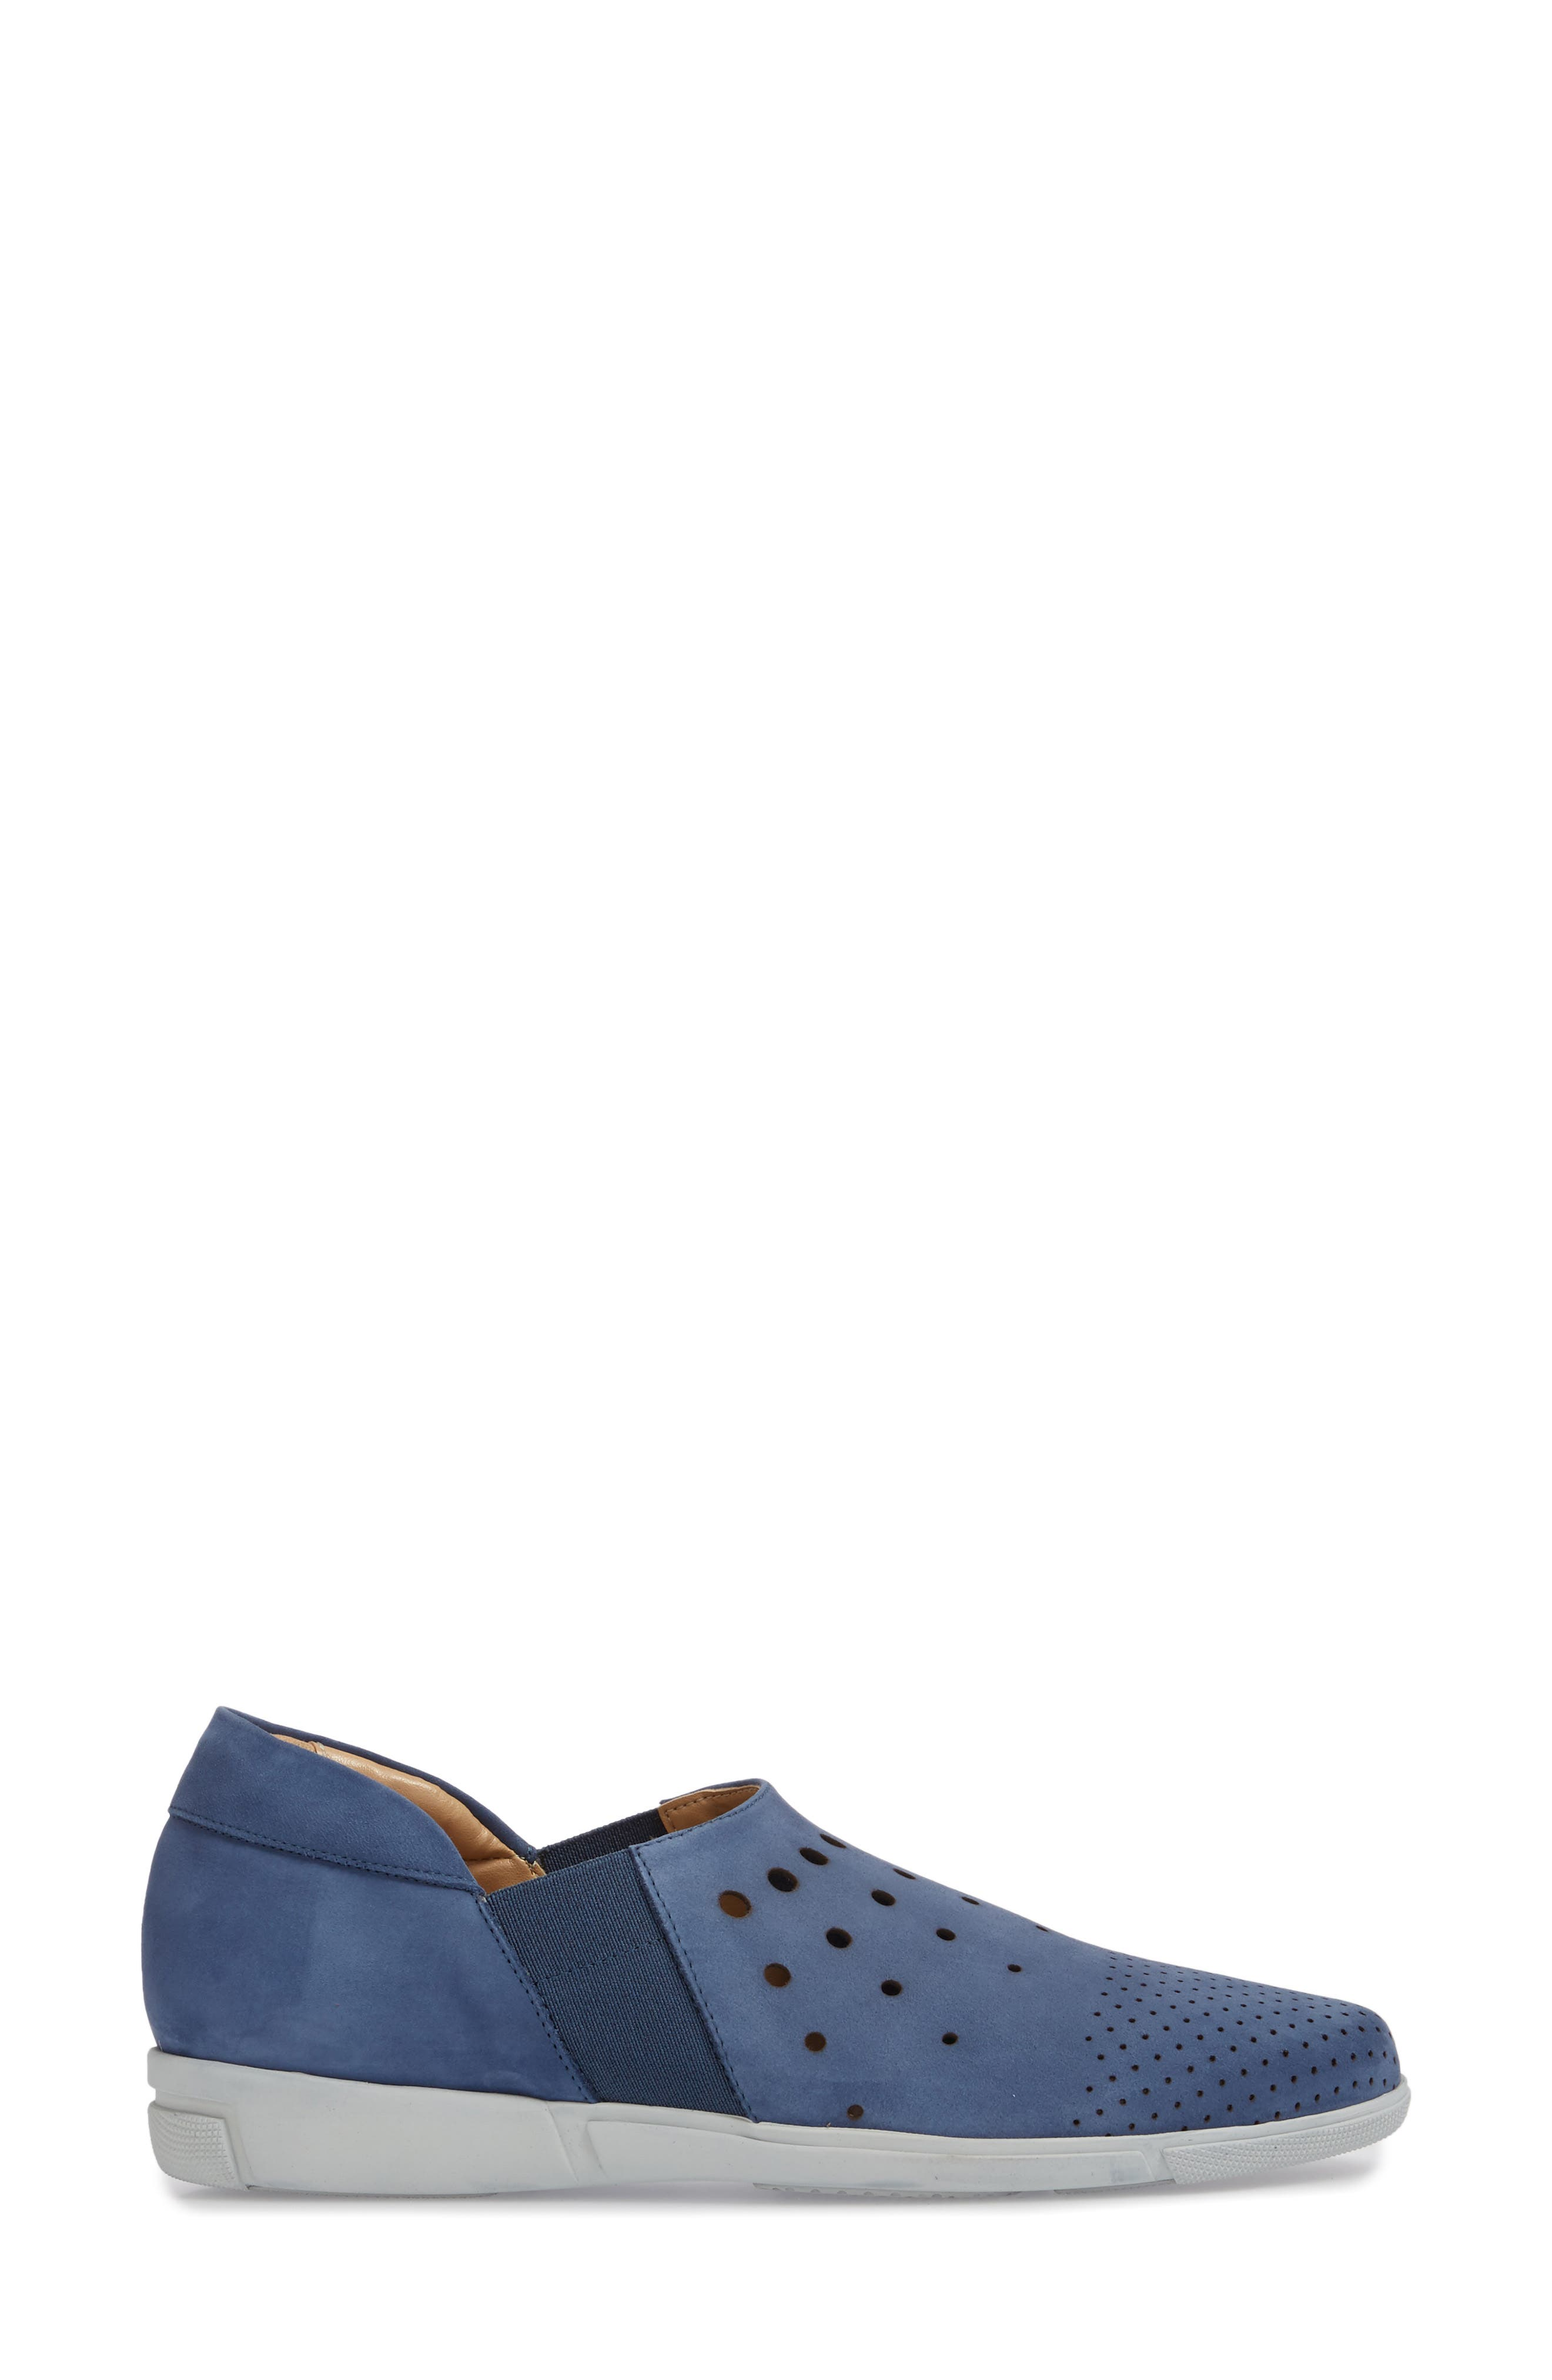 Ditty Perforated Slip-On,                             Alternate thumbnail 3, color,                             Jeans Soft Nubuck